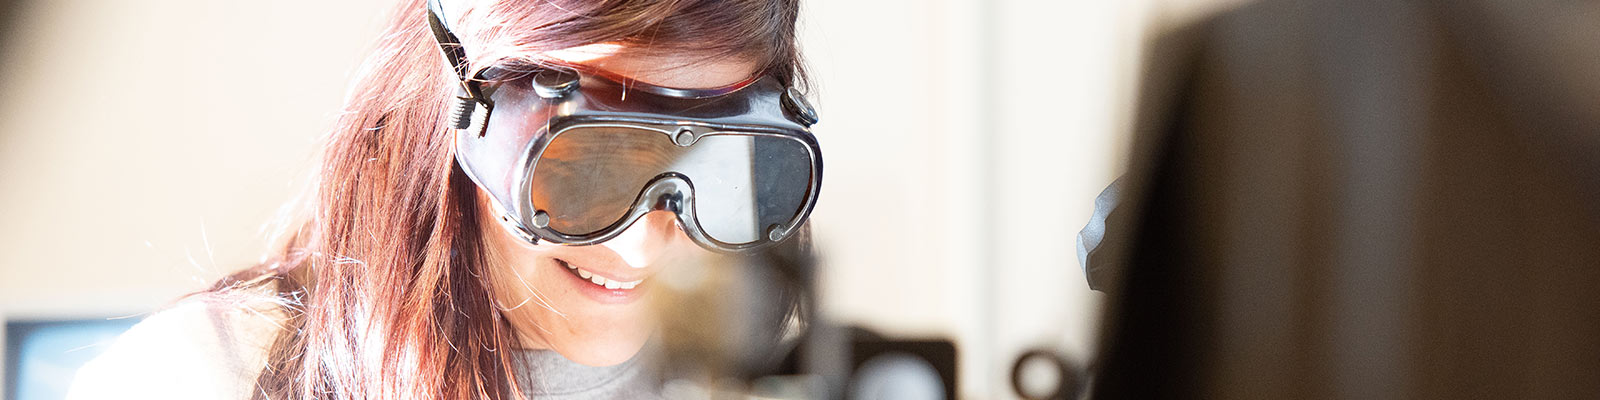 Coe science student with protective goggles